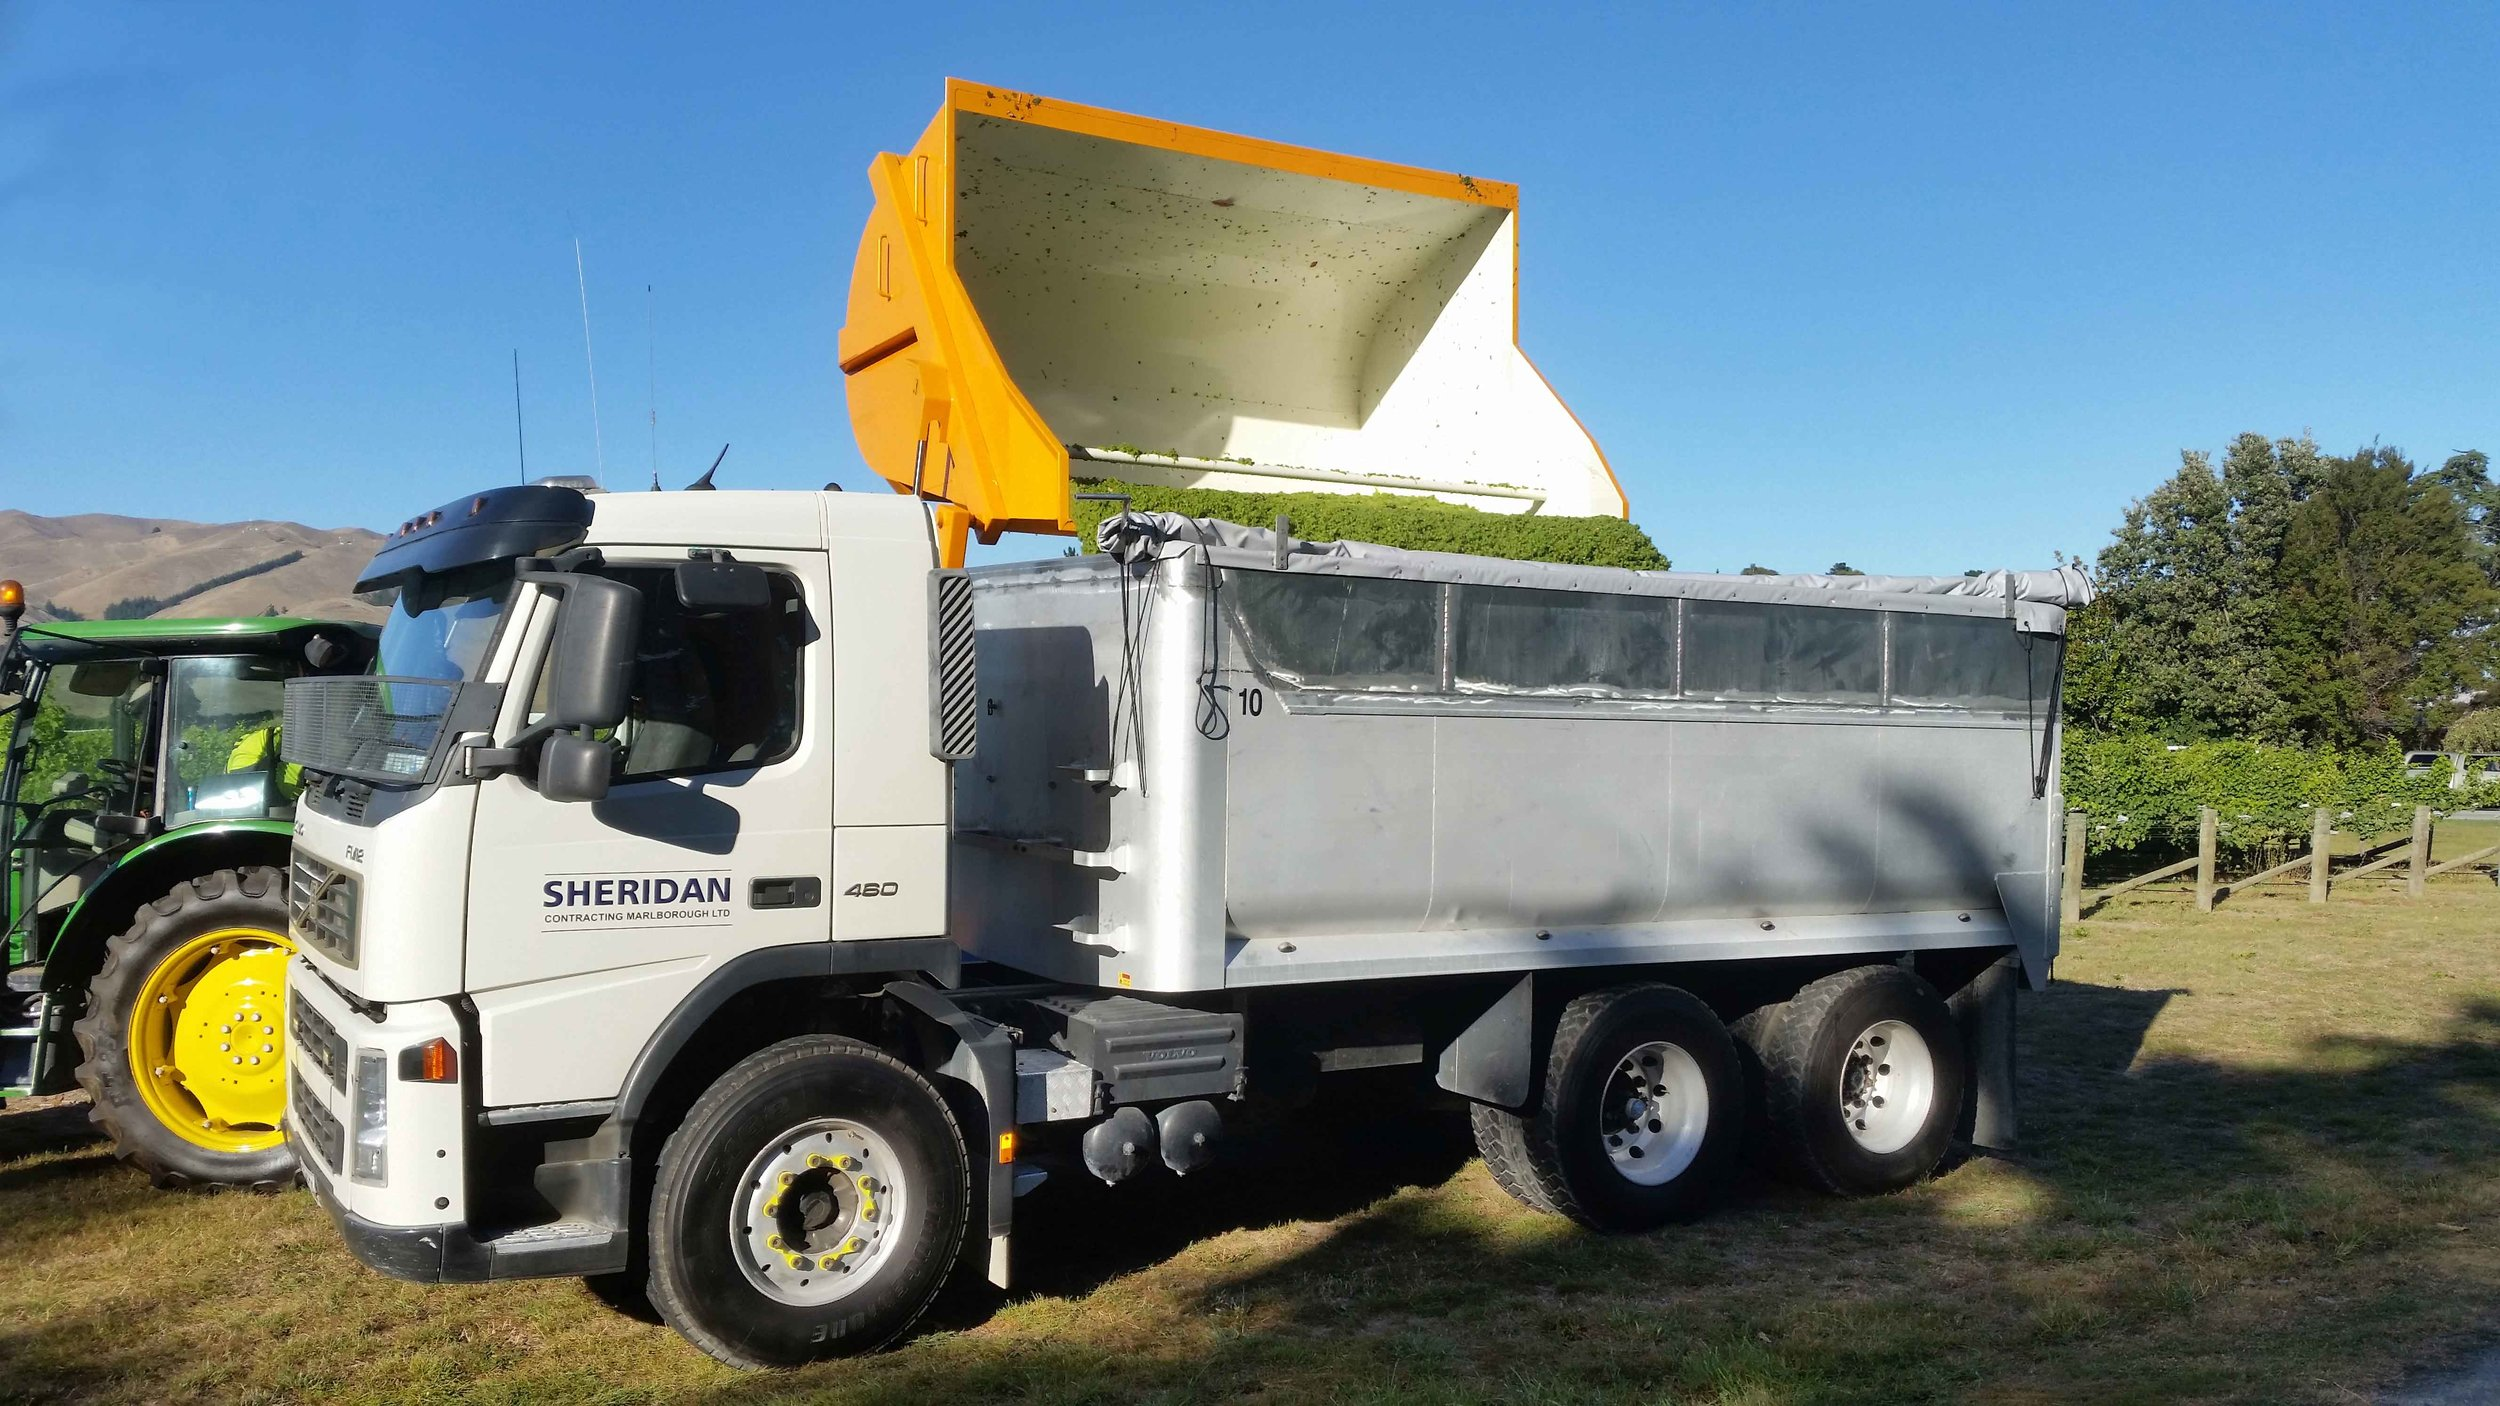 right Machine for the requirements - We have full, well maintained fleet and equipment to handle all specialised vineyard practices through the vine growth cycle suited to a range of sites.